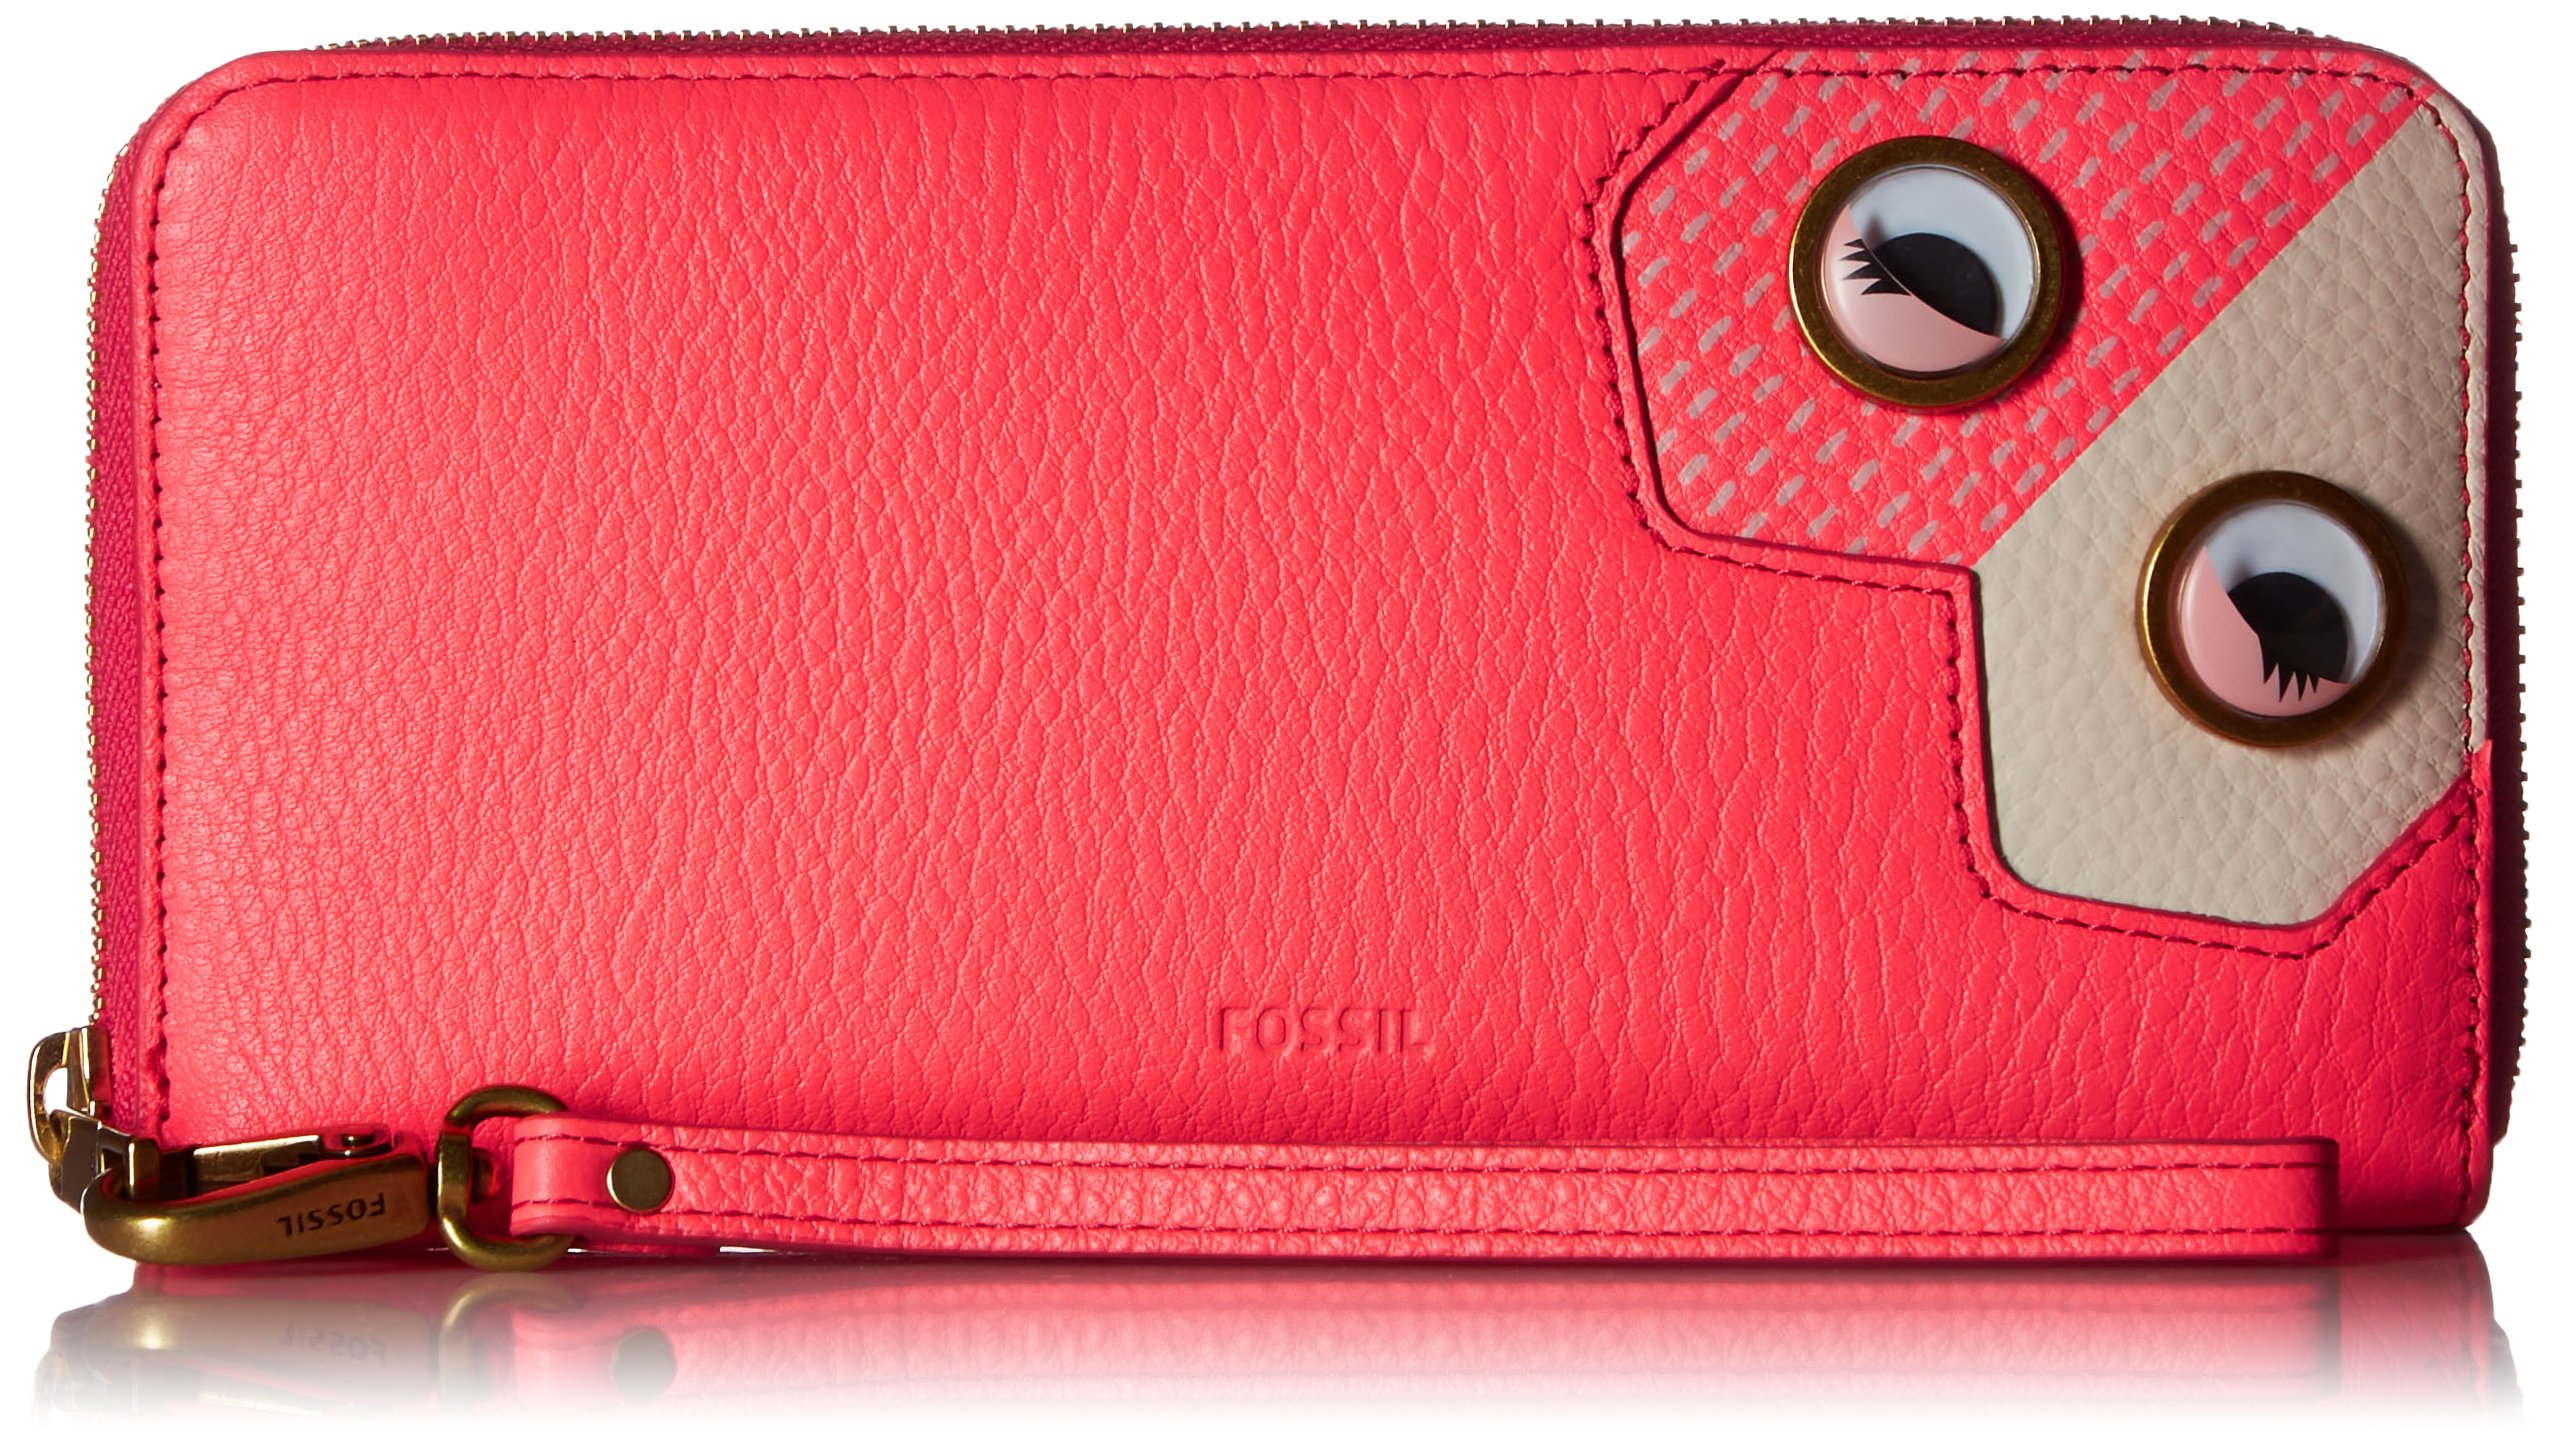 Fossil Emma Rfid Large Zip Wallet-Neon Coral, Neon Coral Pink